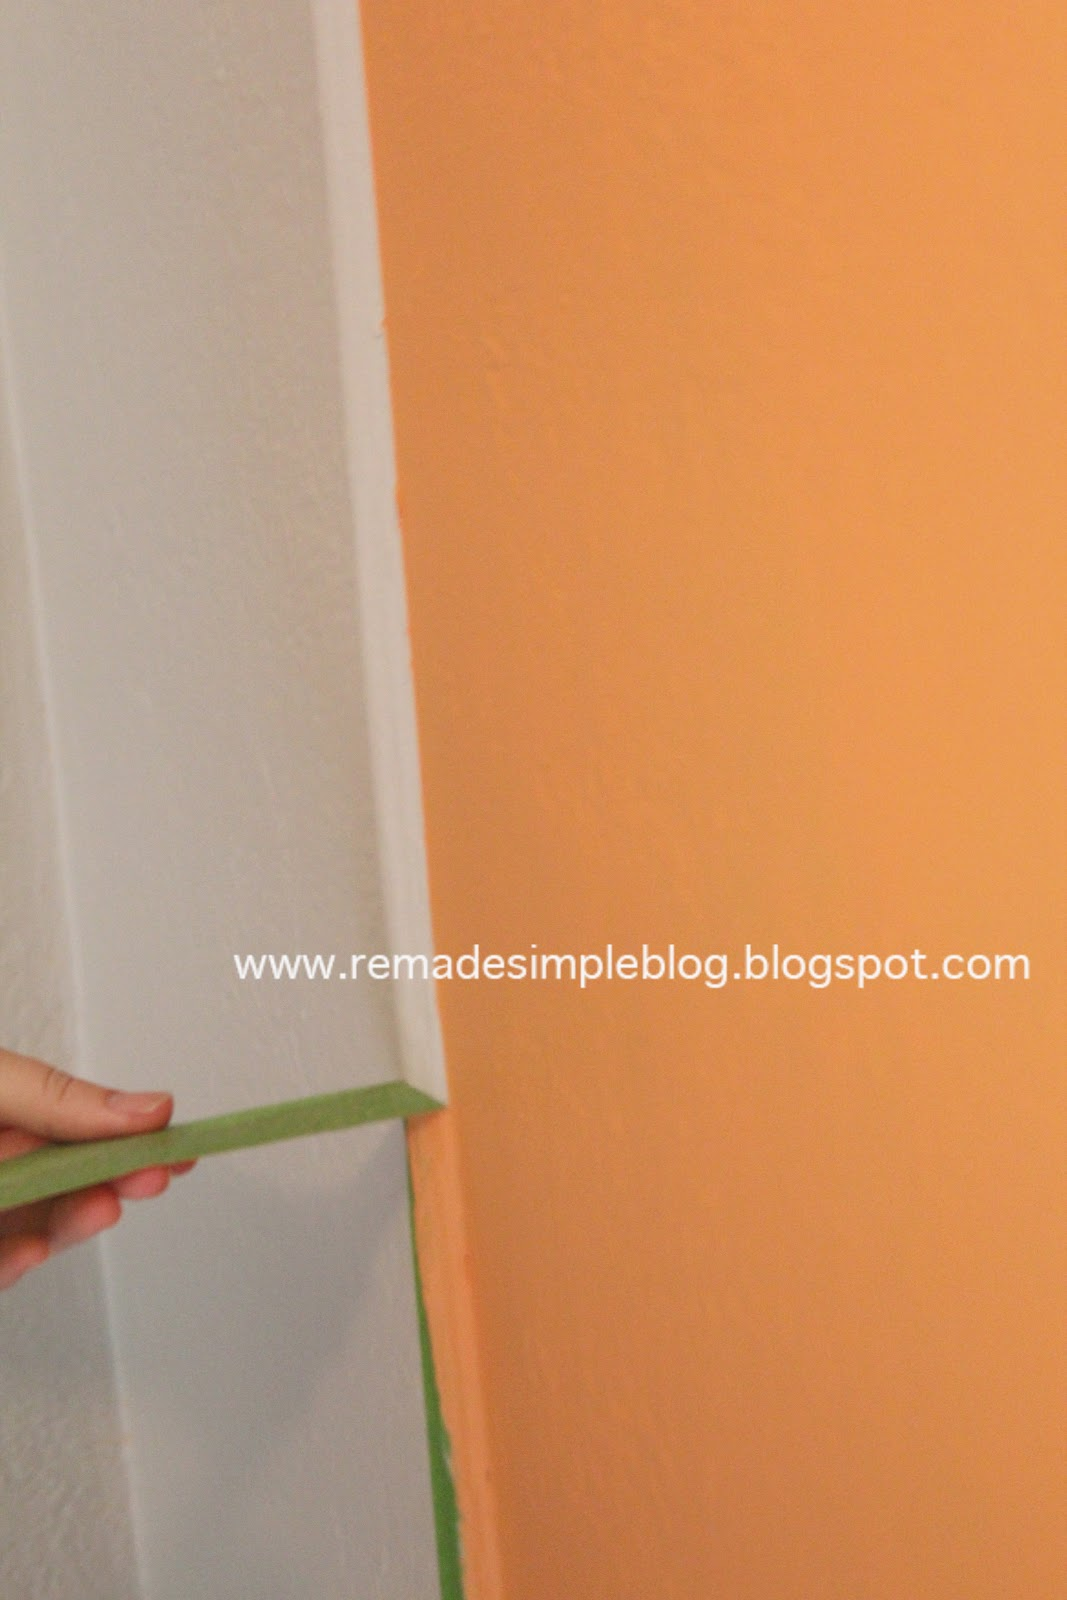 ReMadeSimple How to Paint a Straight Line on a Textured Wall